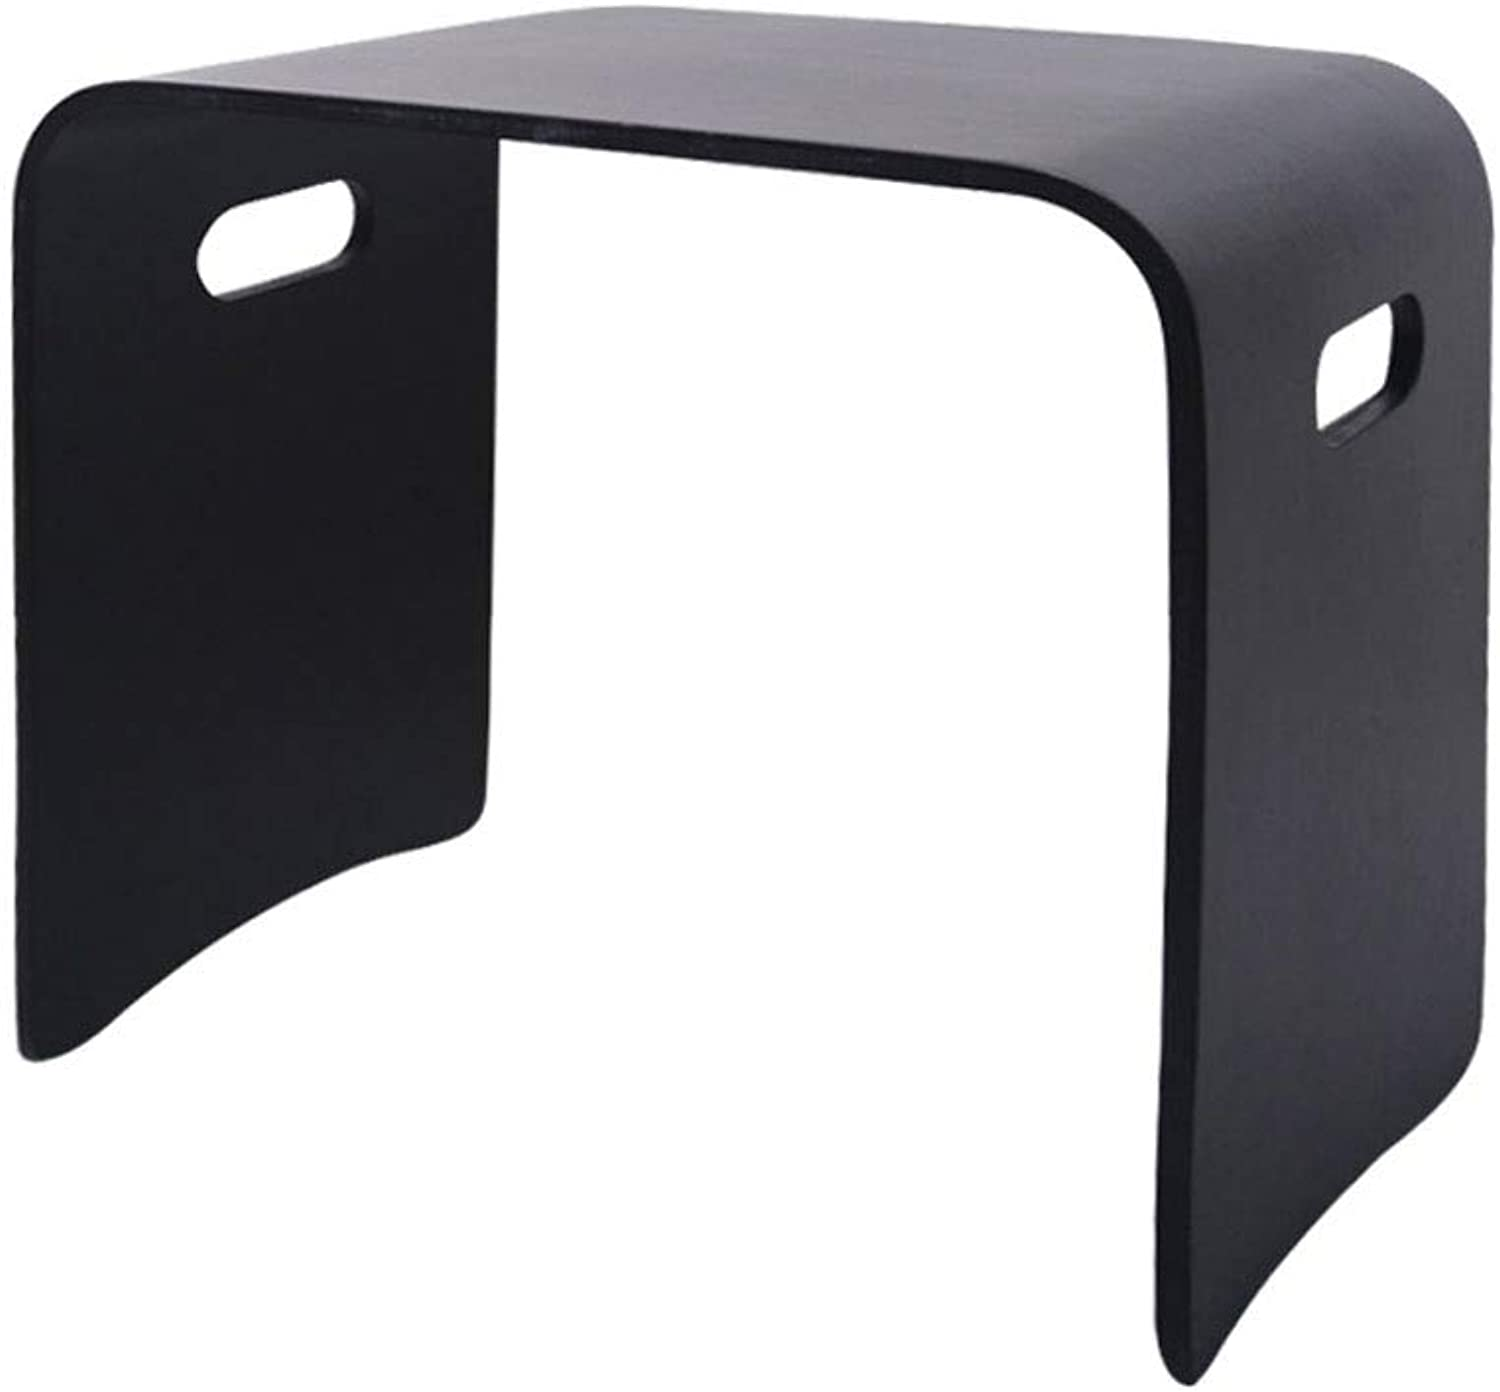 ZSLLO Small Square Stool Solid Wood Black Simple Modern Wooden Bench Bench Adult Home Dining Table Stool Fashion Creative Bedside Table (color   K 18.9  12.2  16.9in)